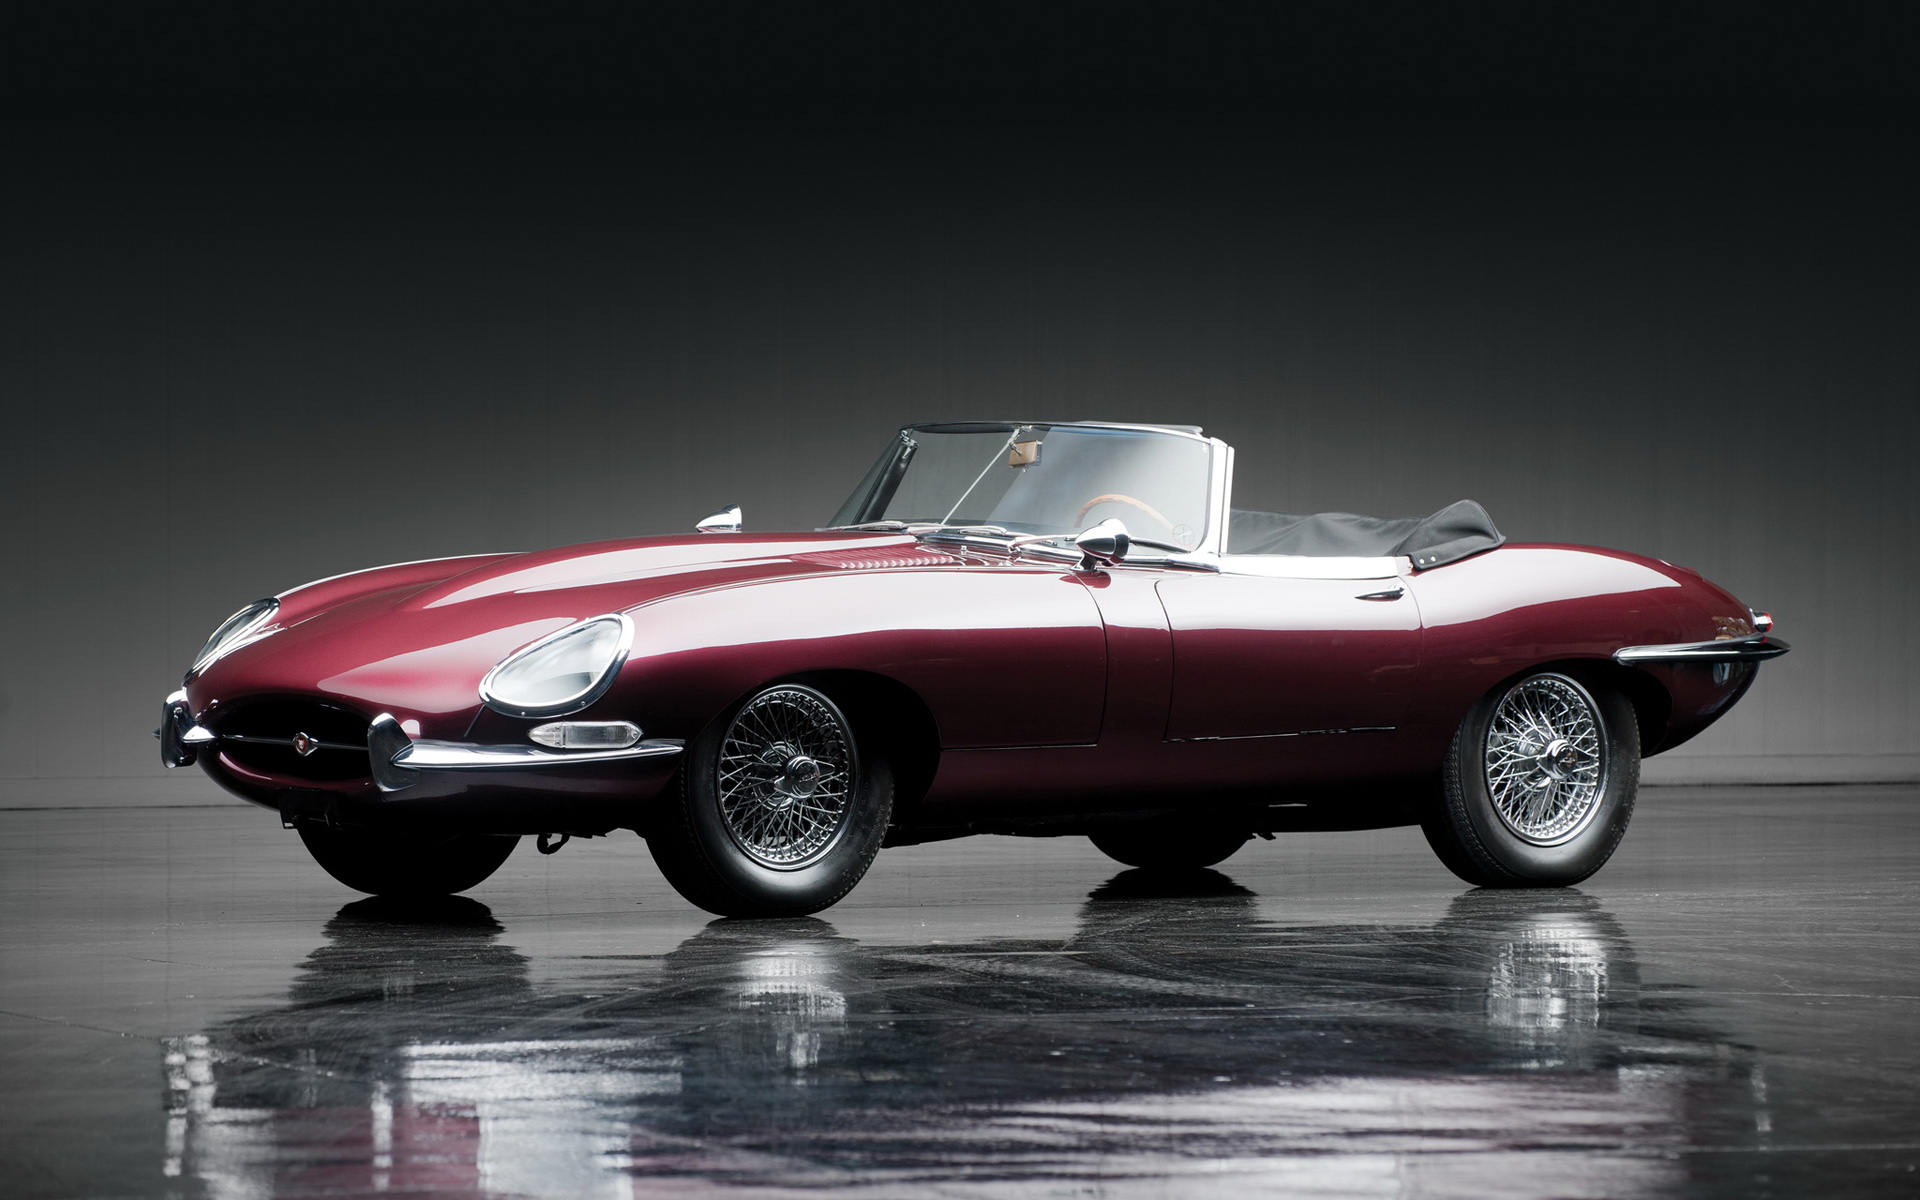 J66 887 in addition 14744 besides Sale moreover 1967 Jaguar E Type Roadster classic cars as well 280841726732818349. on 1966 jaguar xke